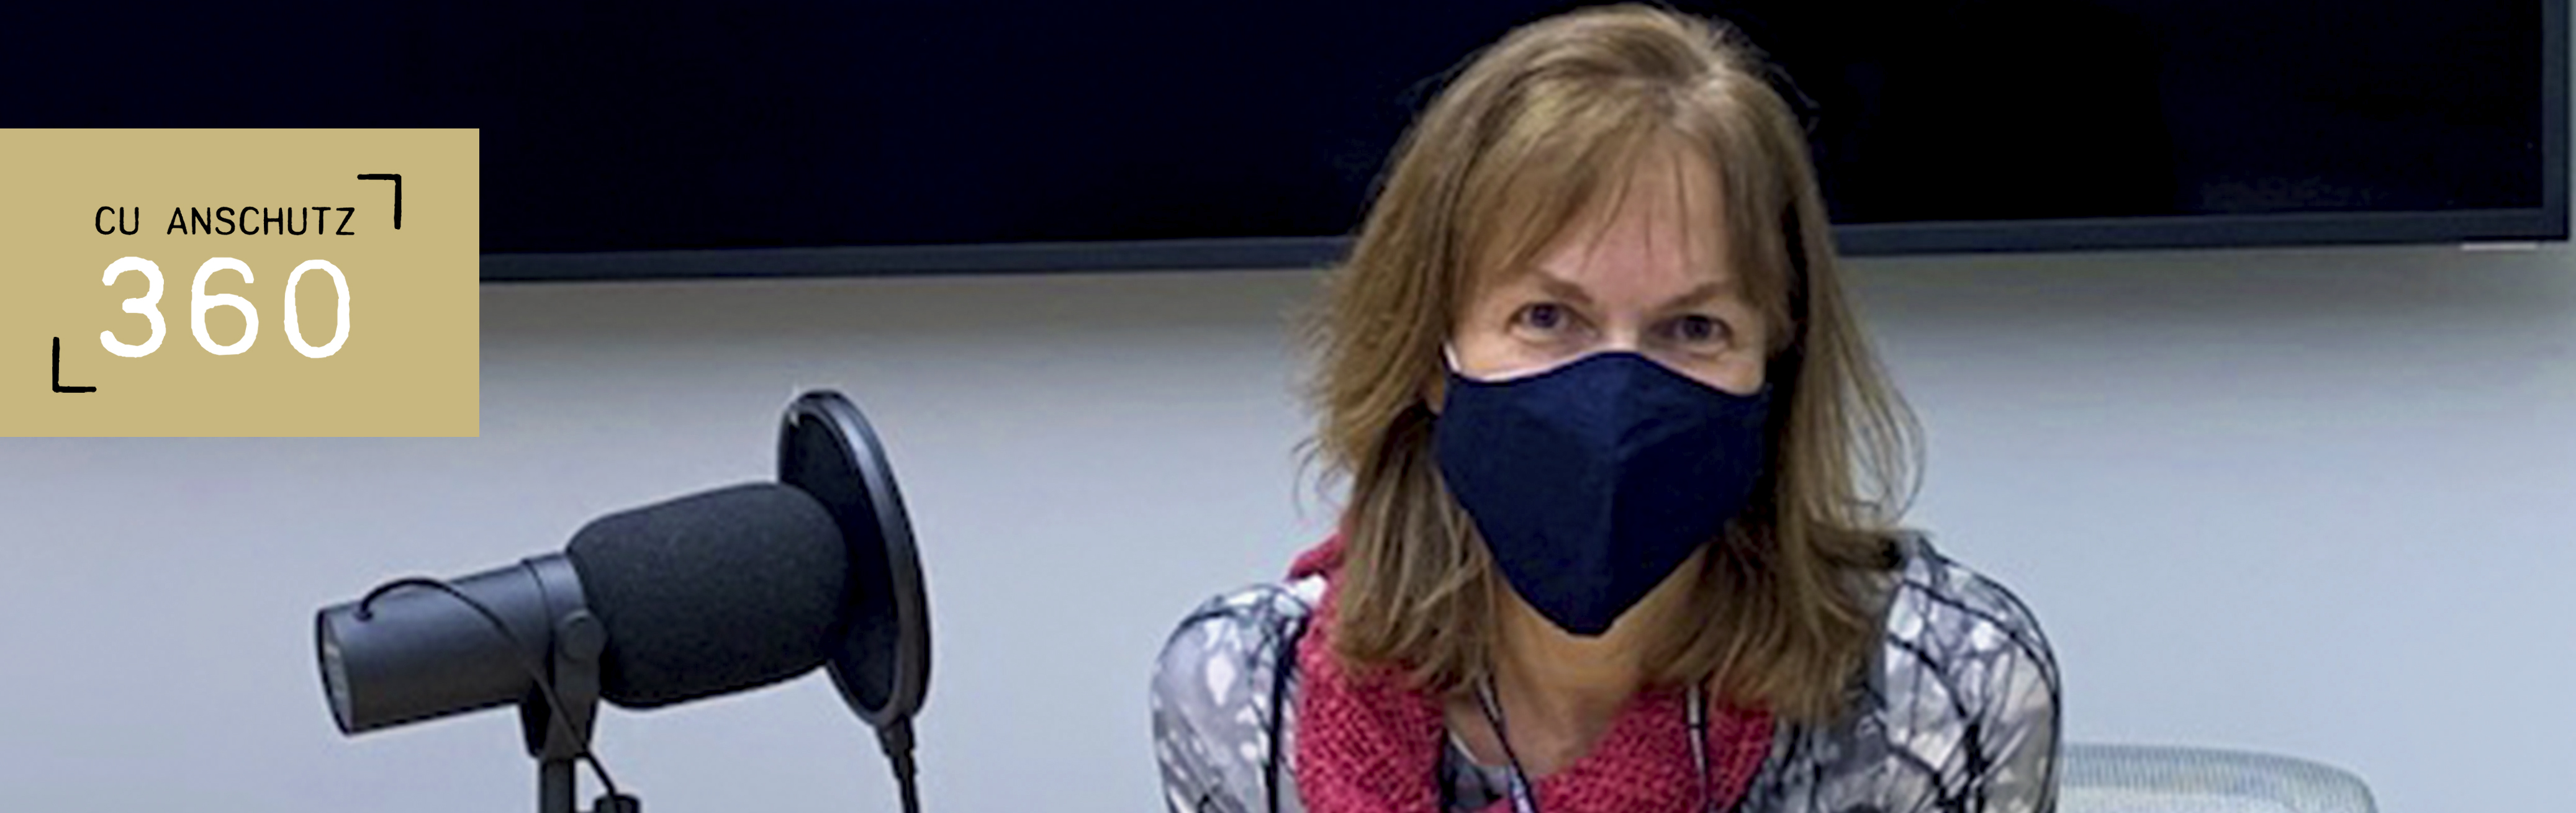 A masked Cathy Bradley sits next to a large podcast microphone